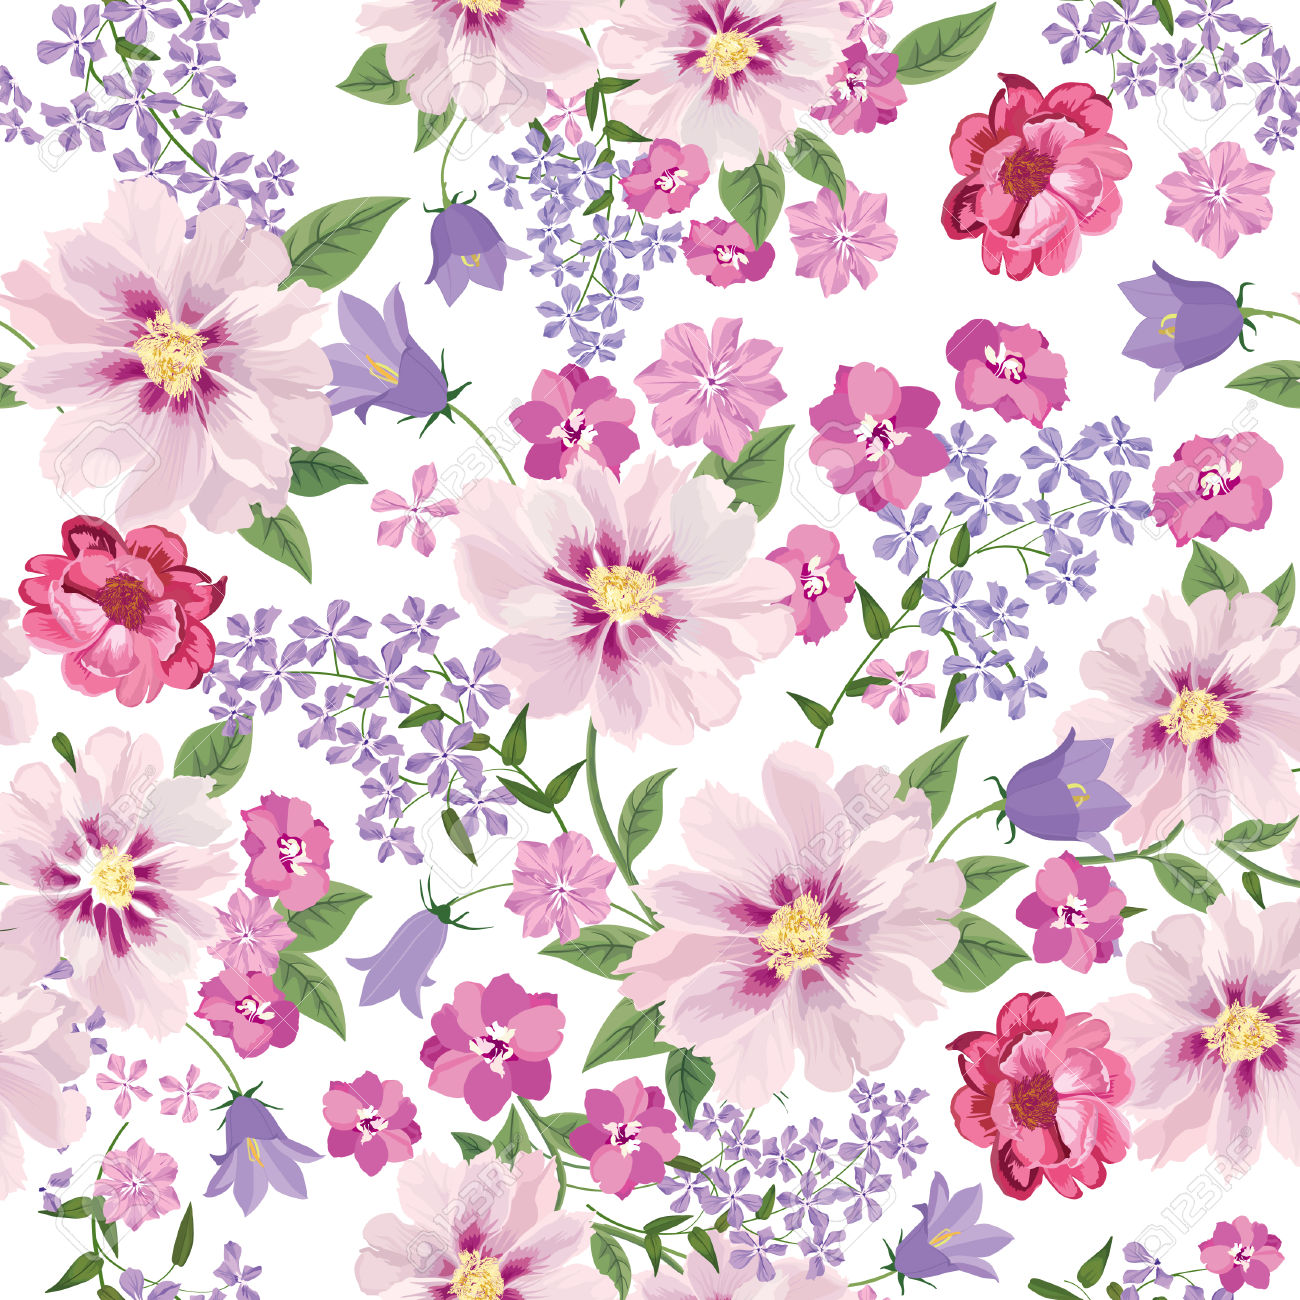 Background floral images vector free stock Flowers for background - ClipartFest vector free stock